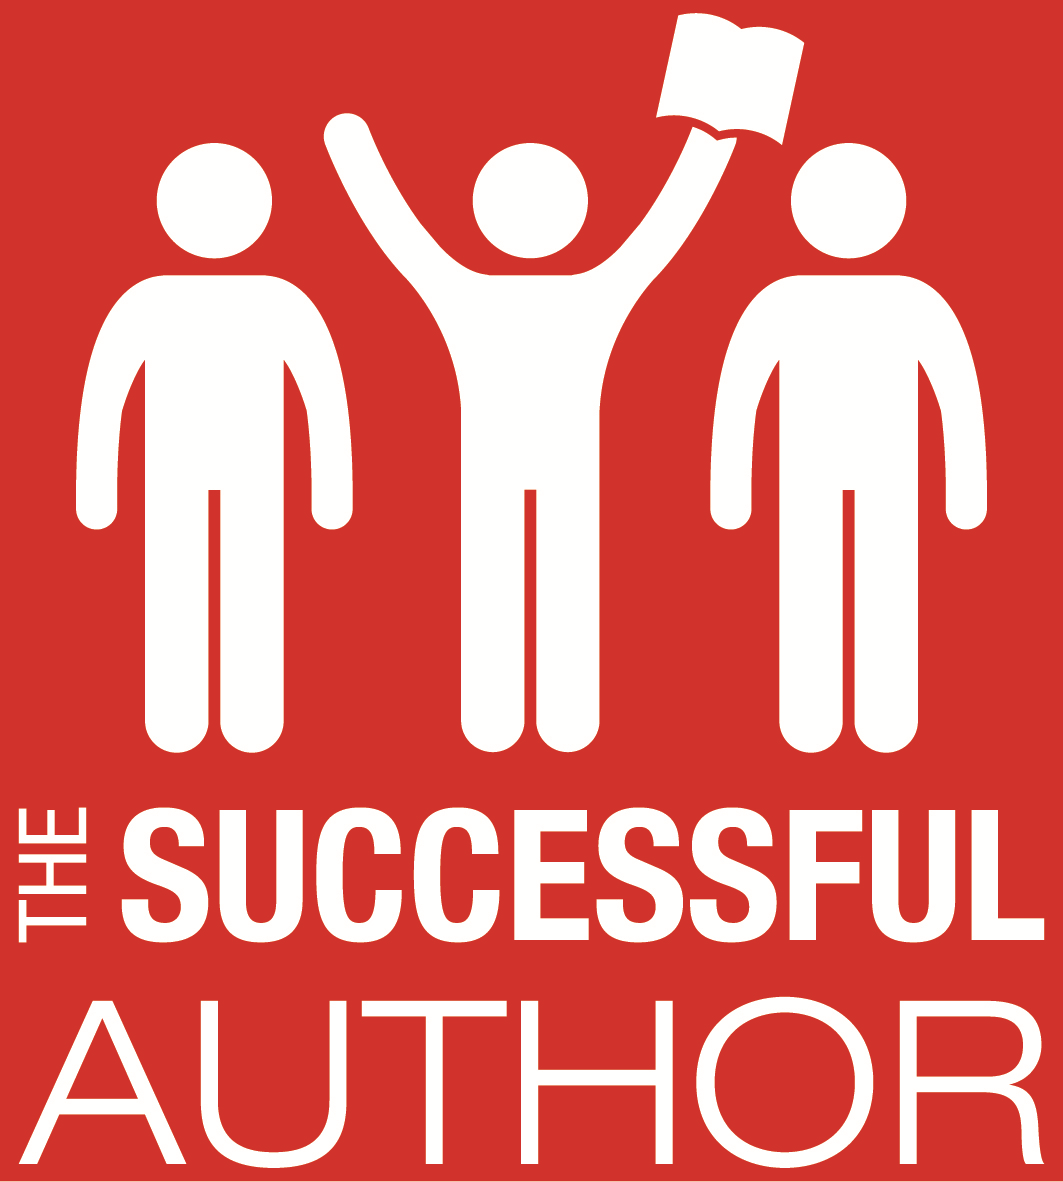 Top 10 Habits To Become A Successful Author [Subtitle added] Screenshot